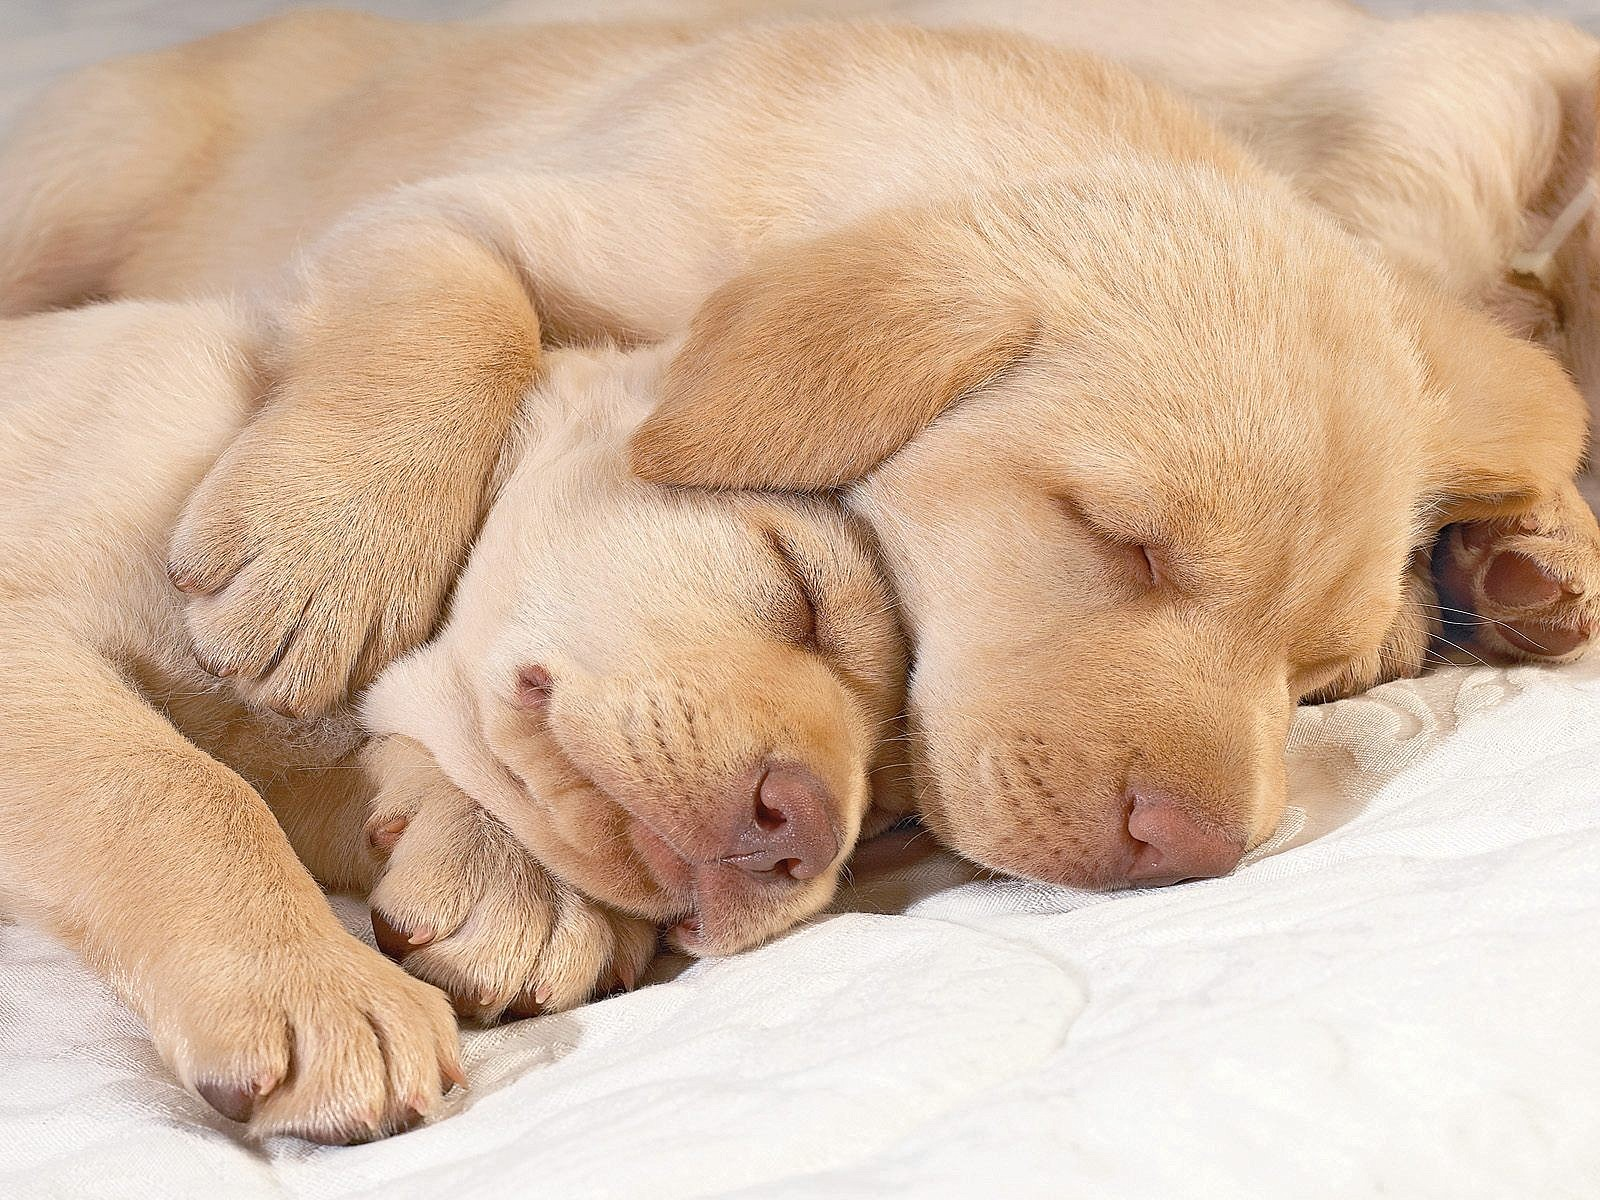 14 Sleeping Pet Photography Images